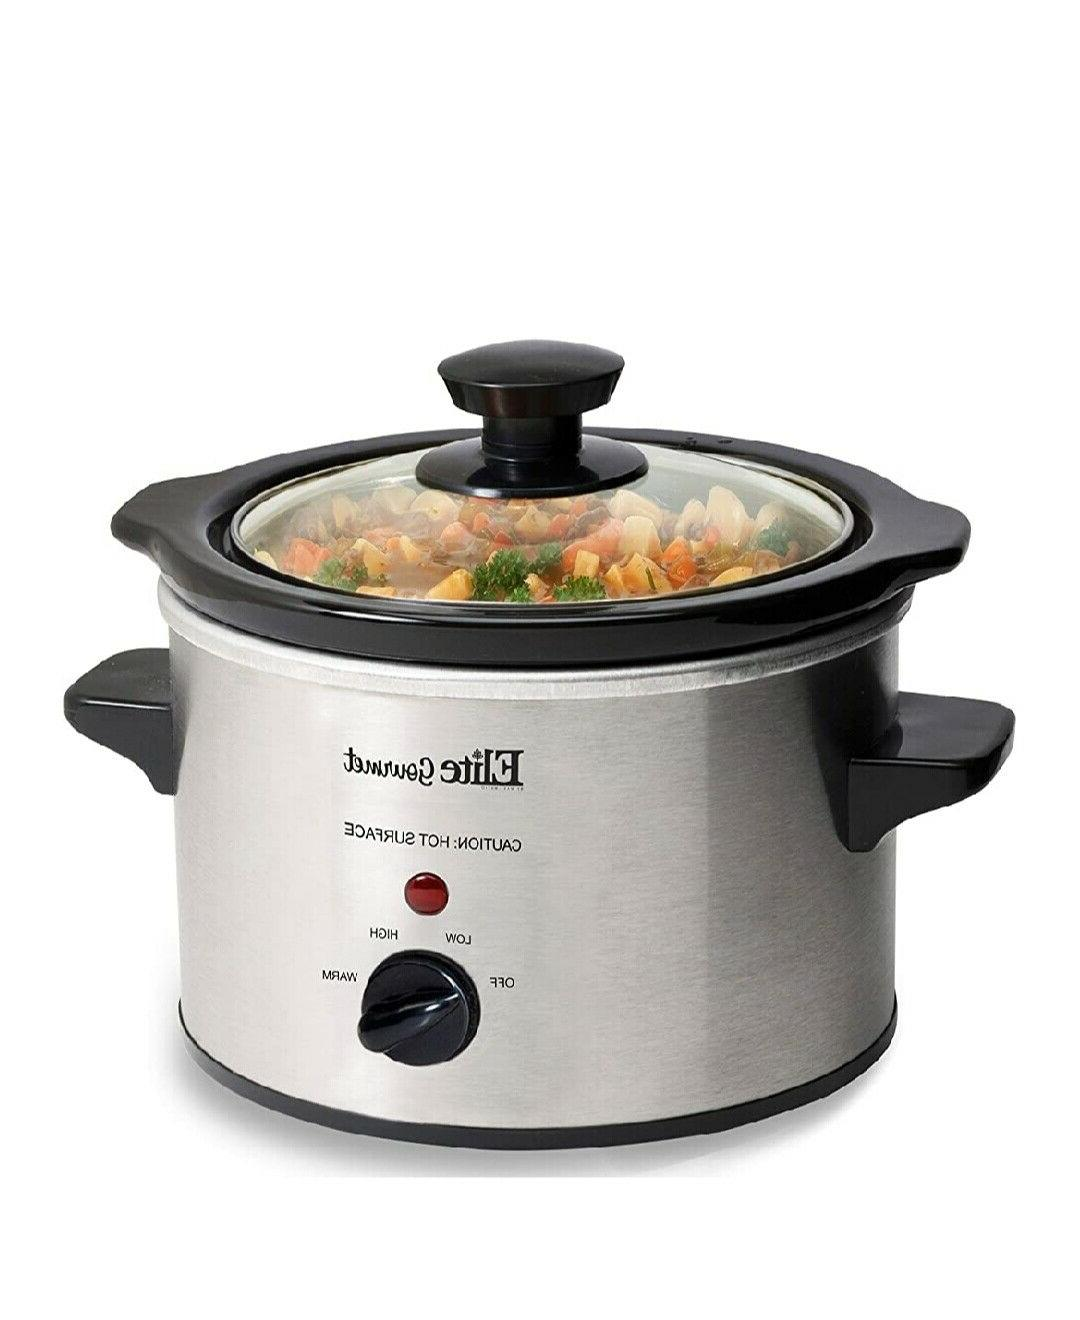 Small Slow Cooker Kitchen Appliance Portable